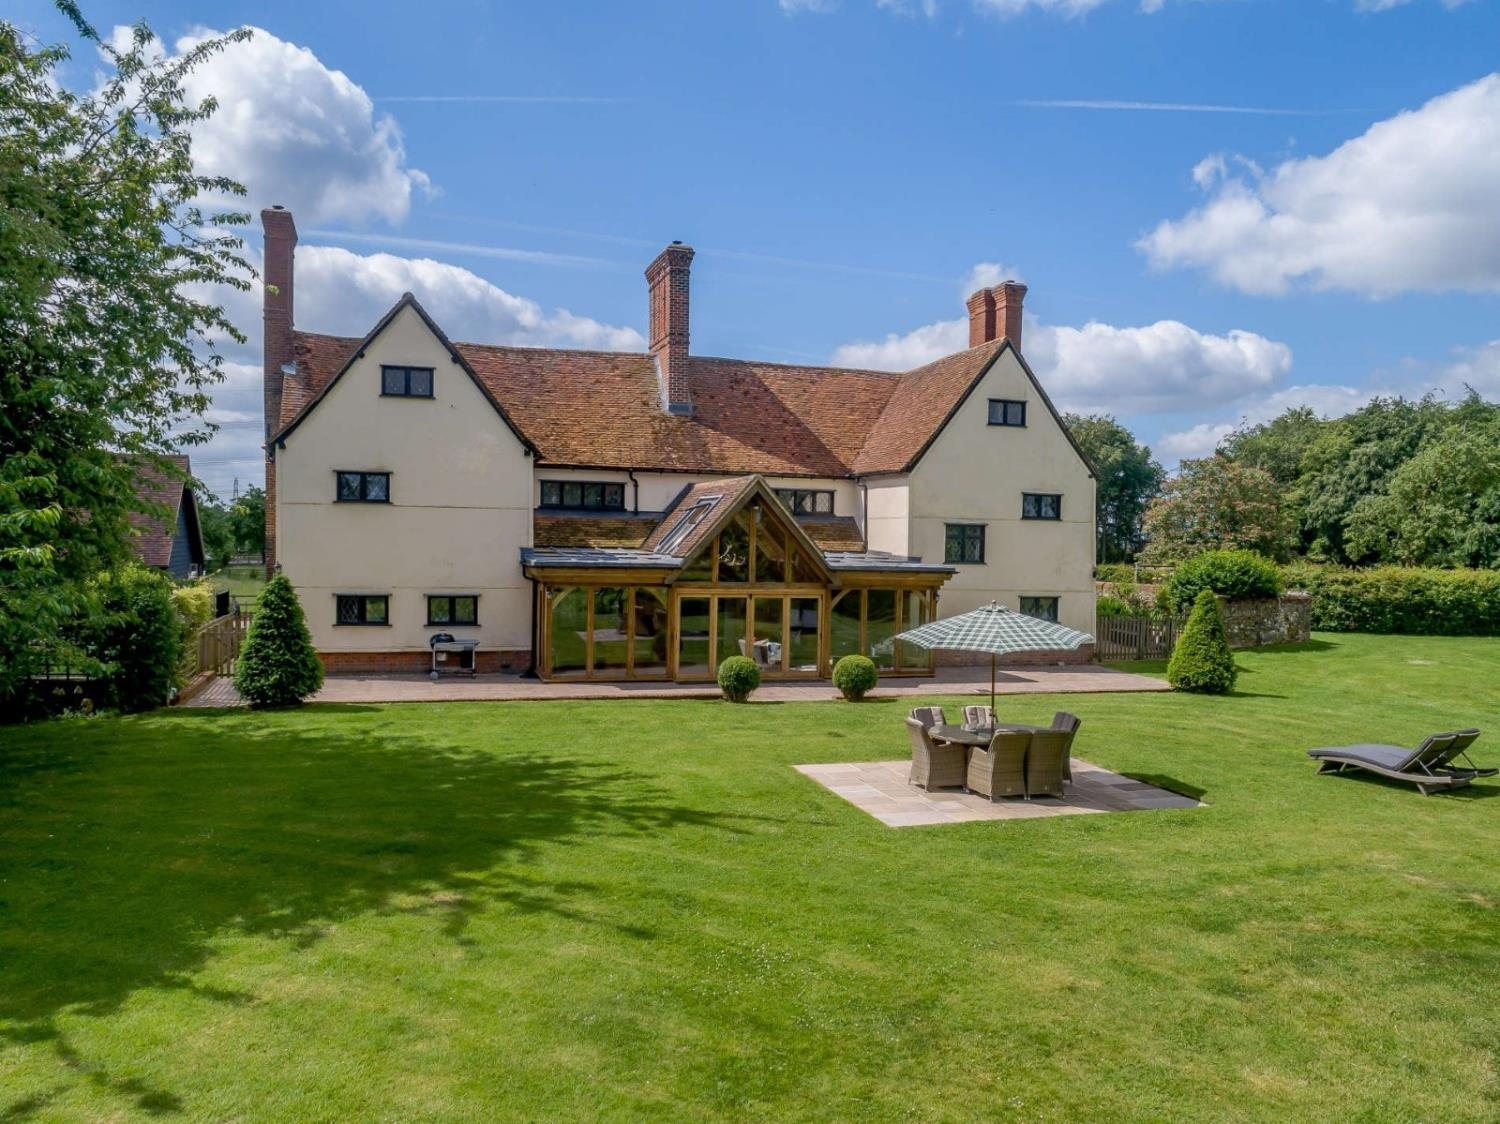 LOT 1 Beauchamps, Wyddial, Buntingford, Hertfordshire